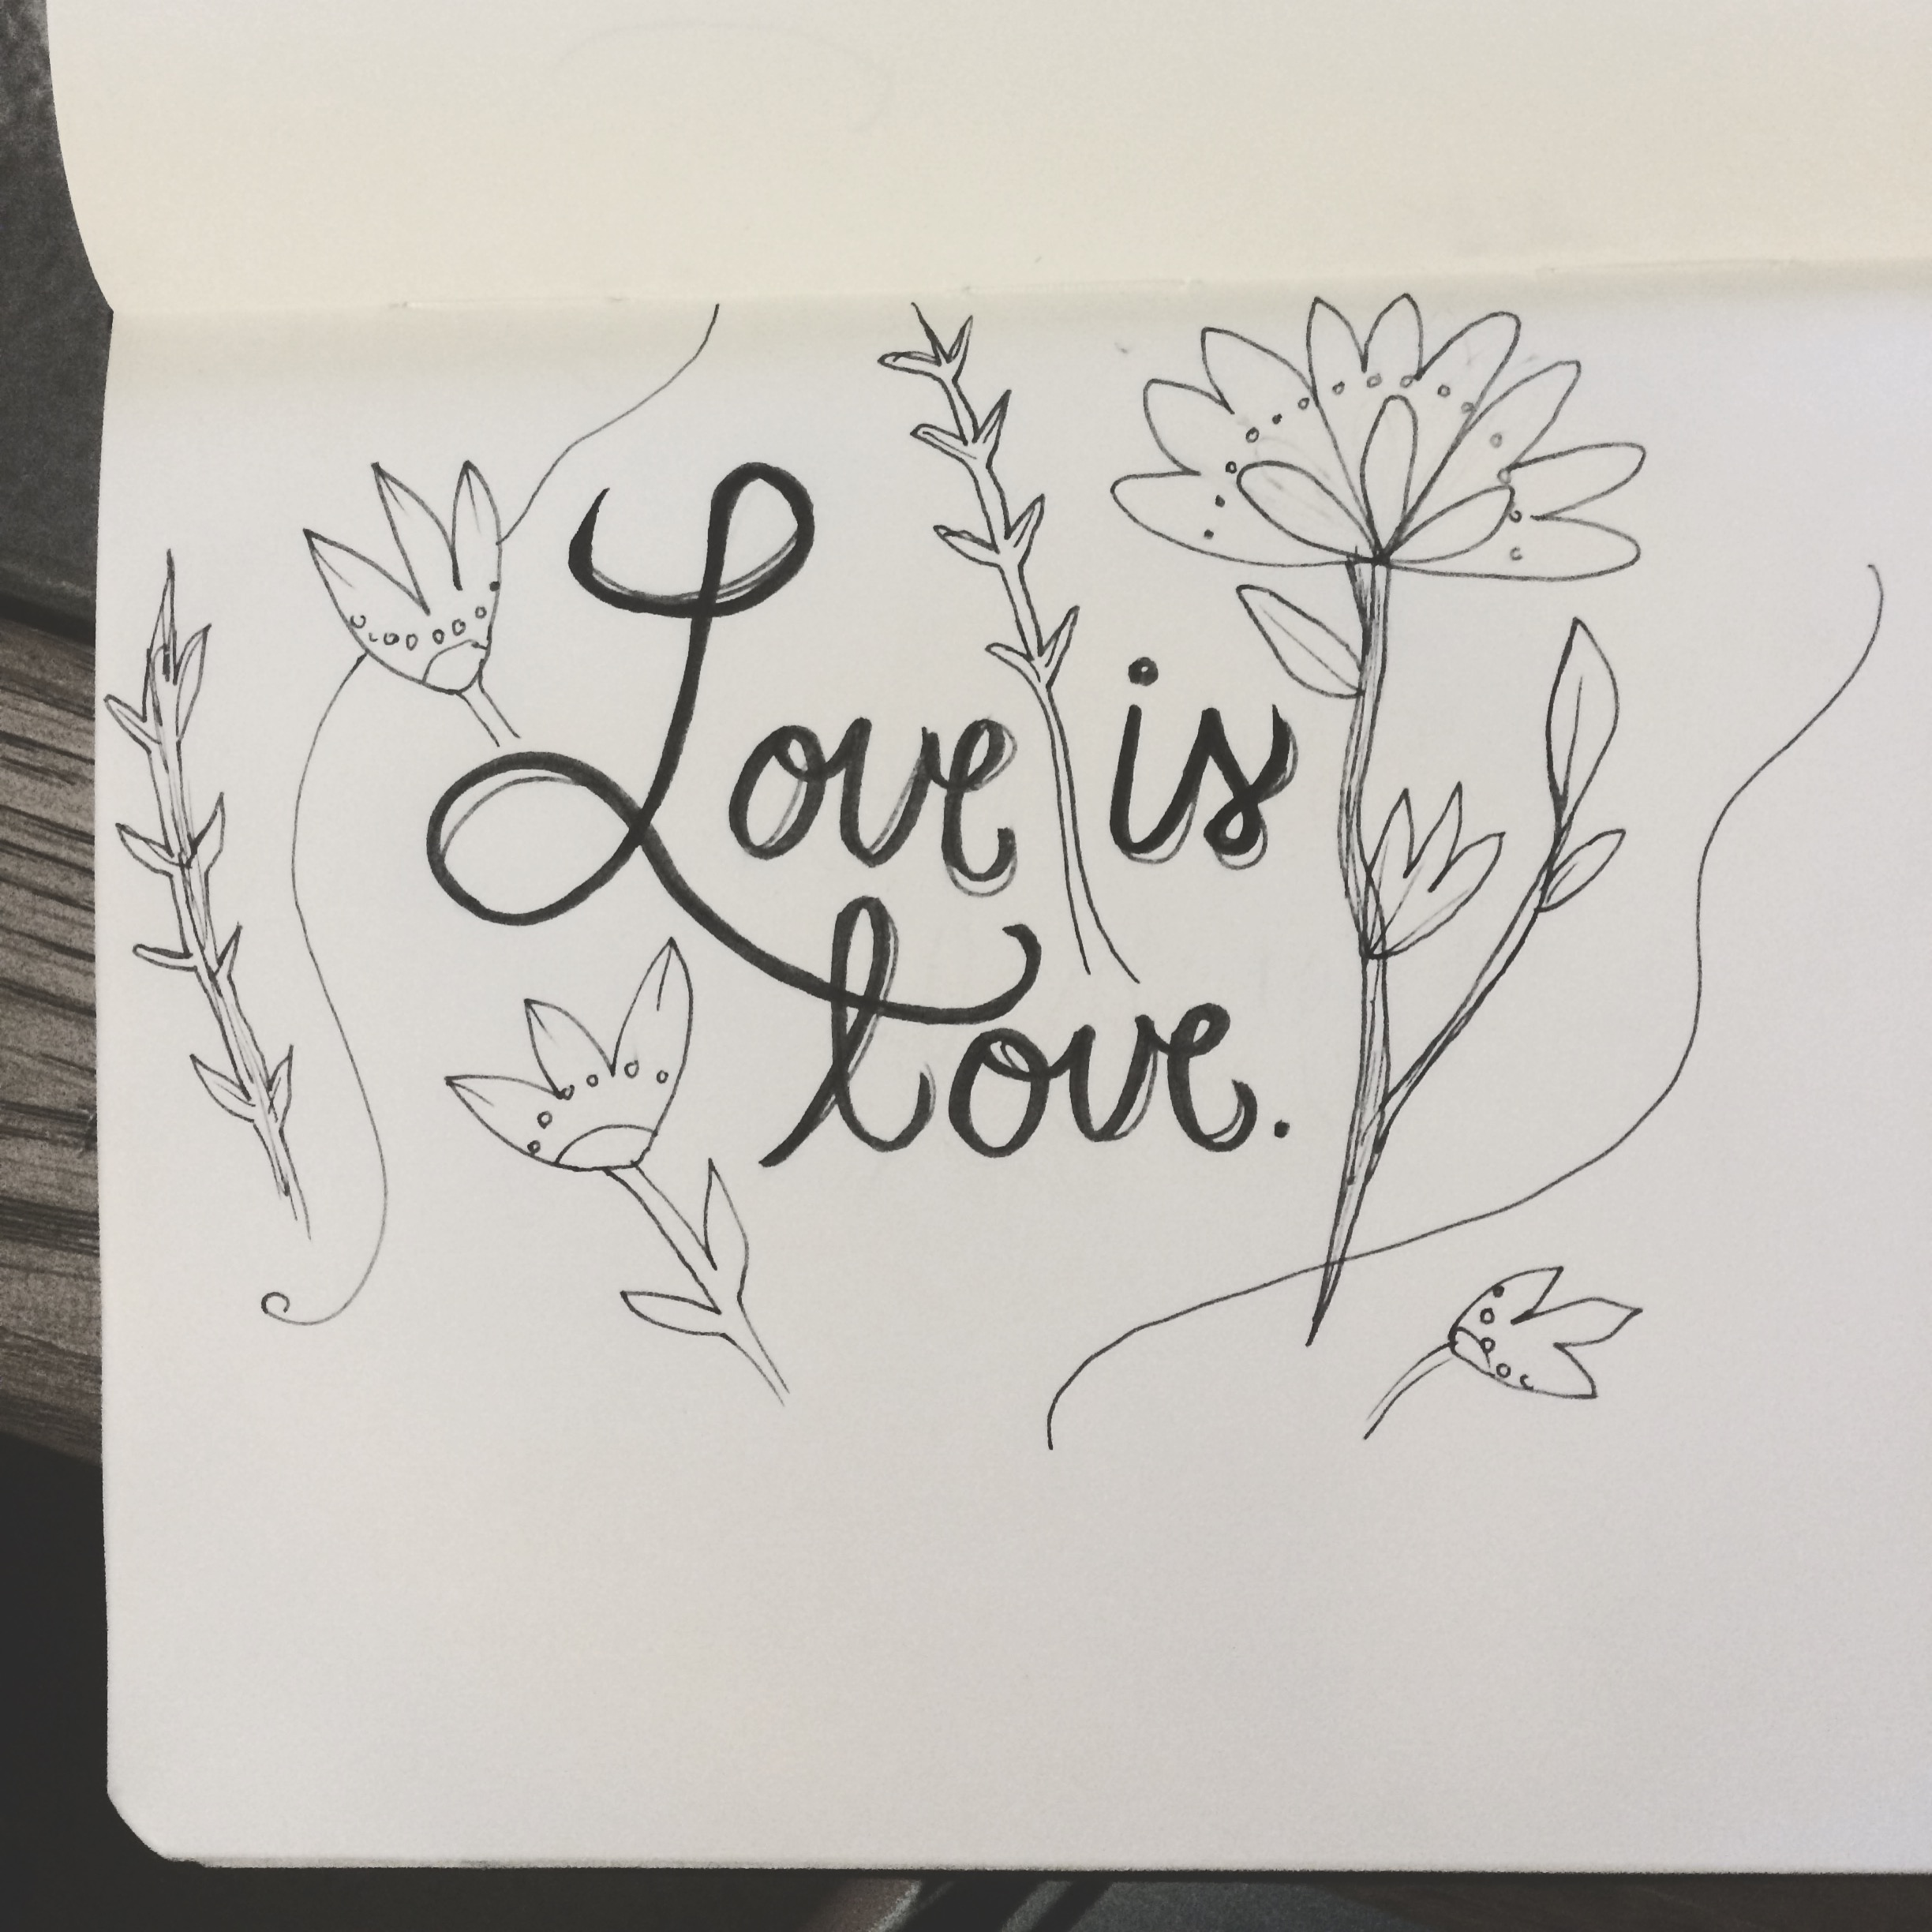 Lil' doodle from my moleskine. Love is love, and it conquers all.